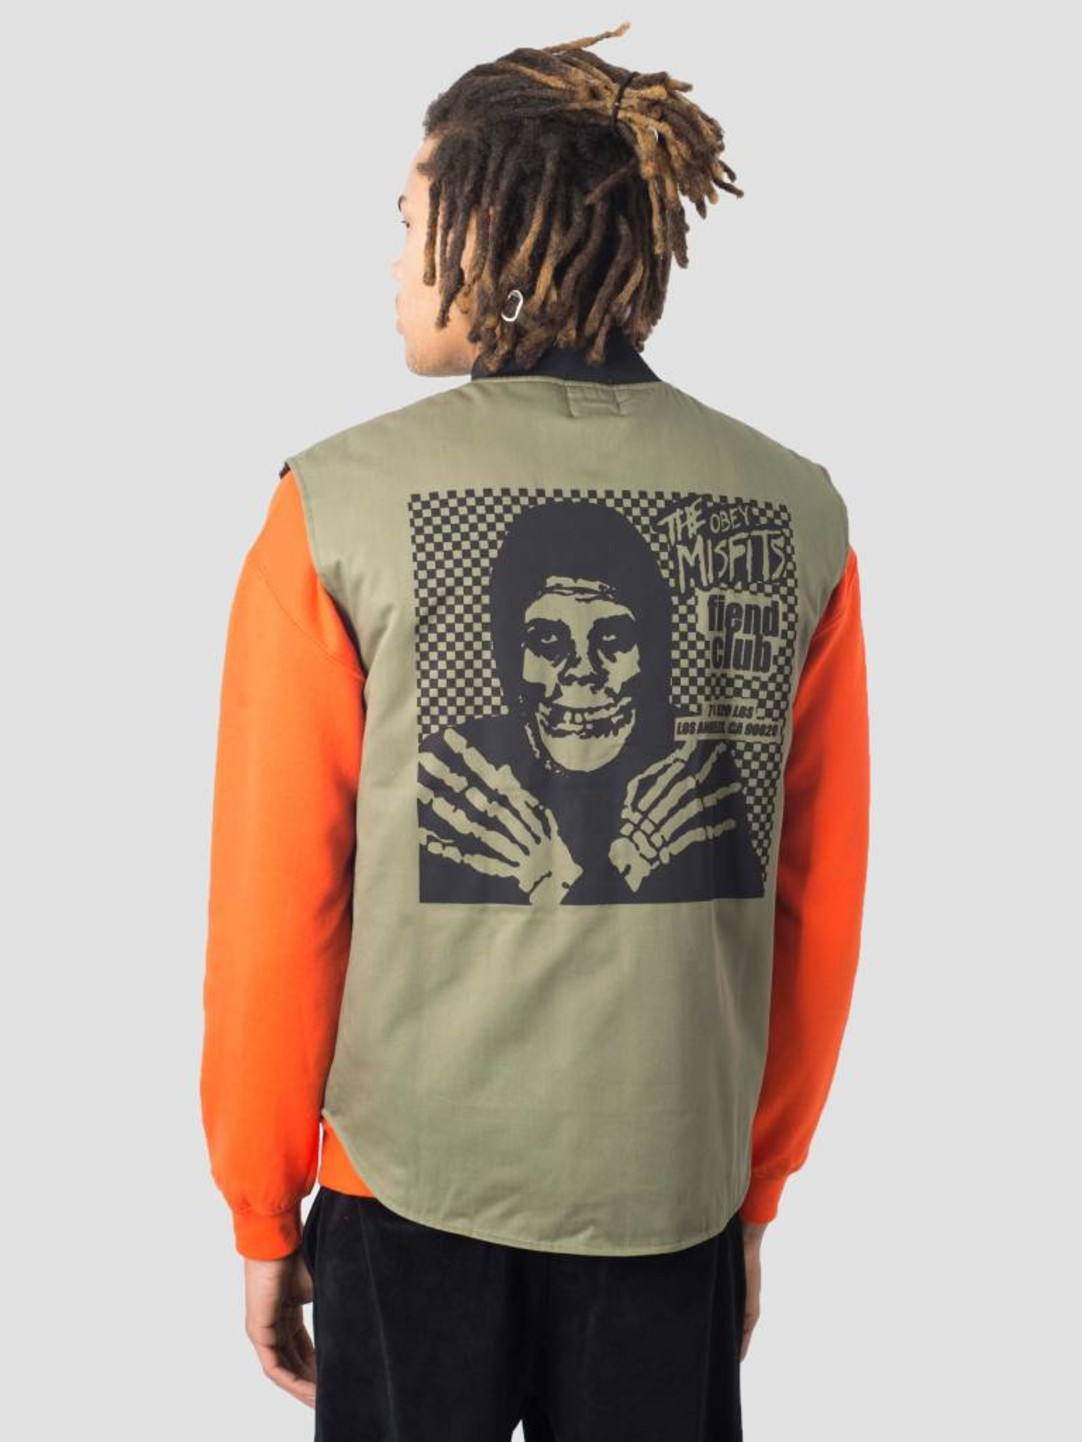 Obey Obey Misfits Fiend Club Hallow Deconstruction Vest Olive 121412055